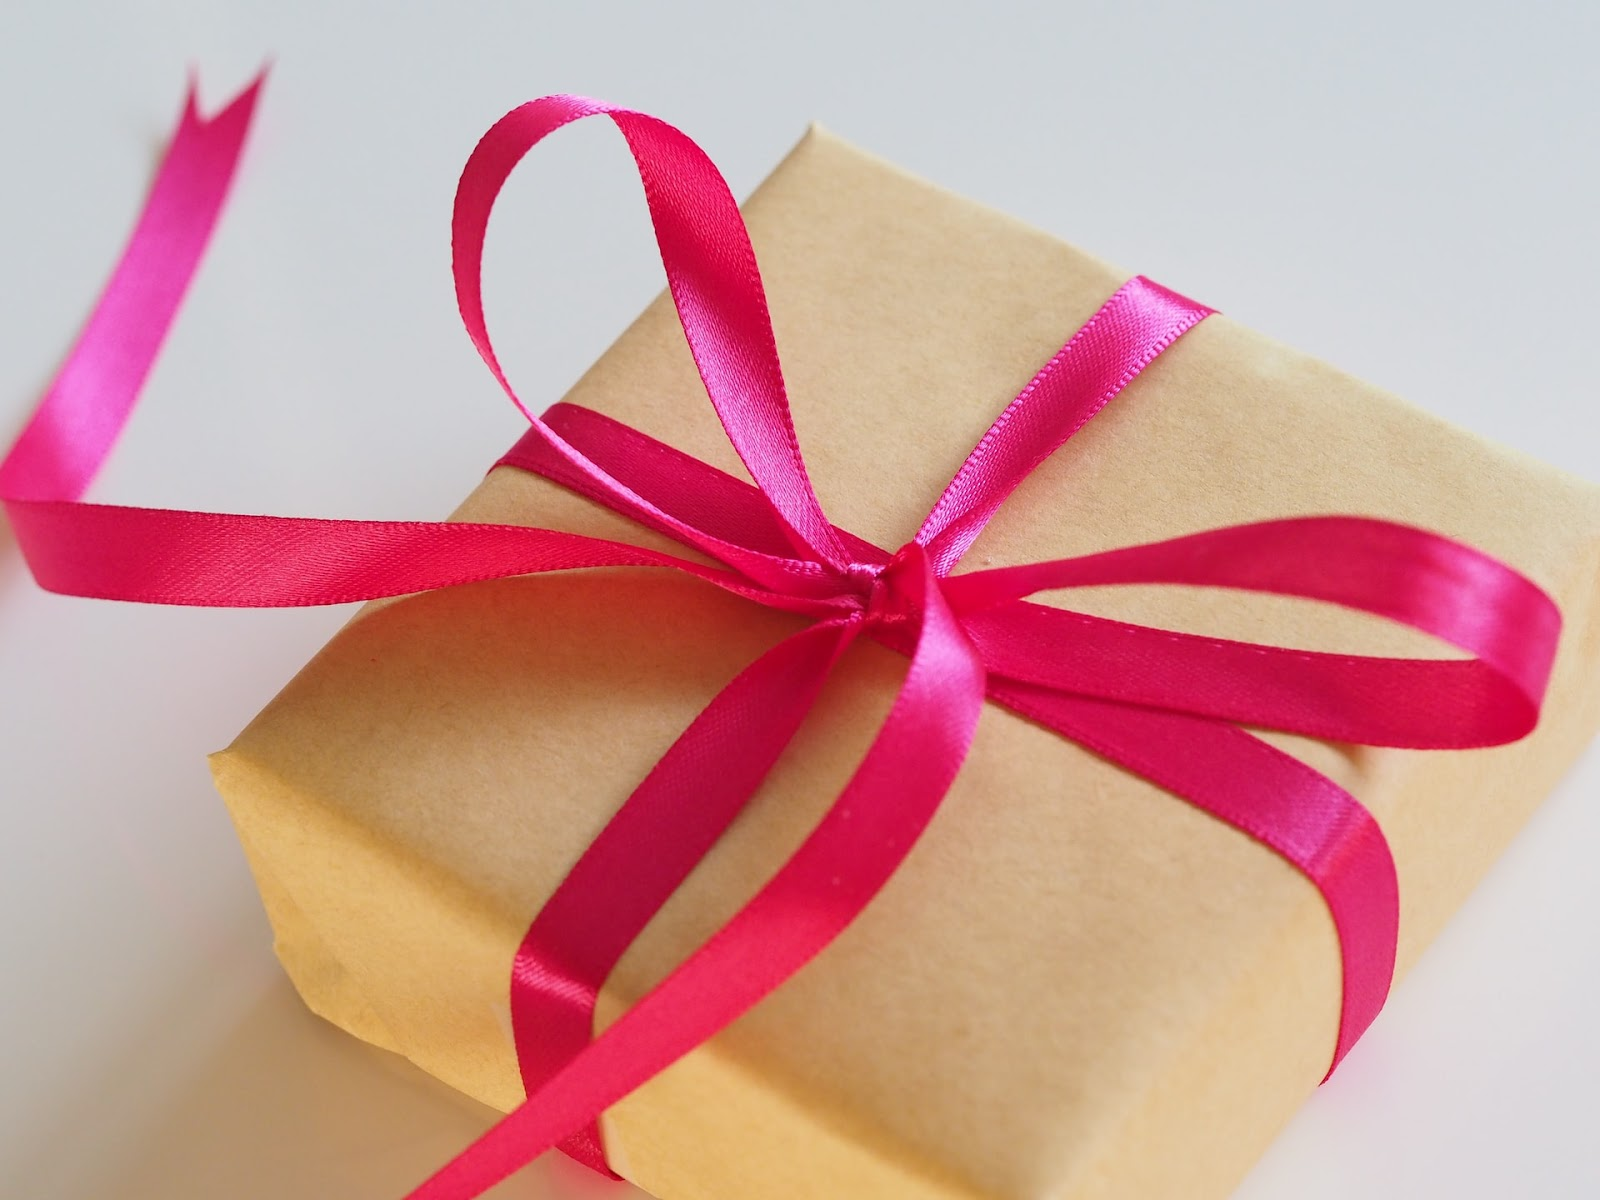 A package covered in brown paper with a hot pink decorative ribbon